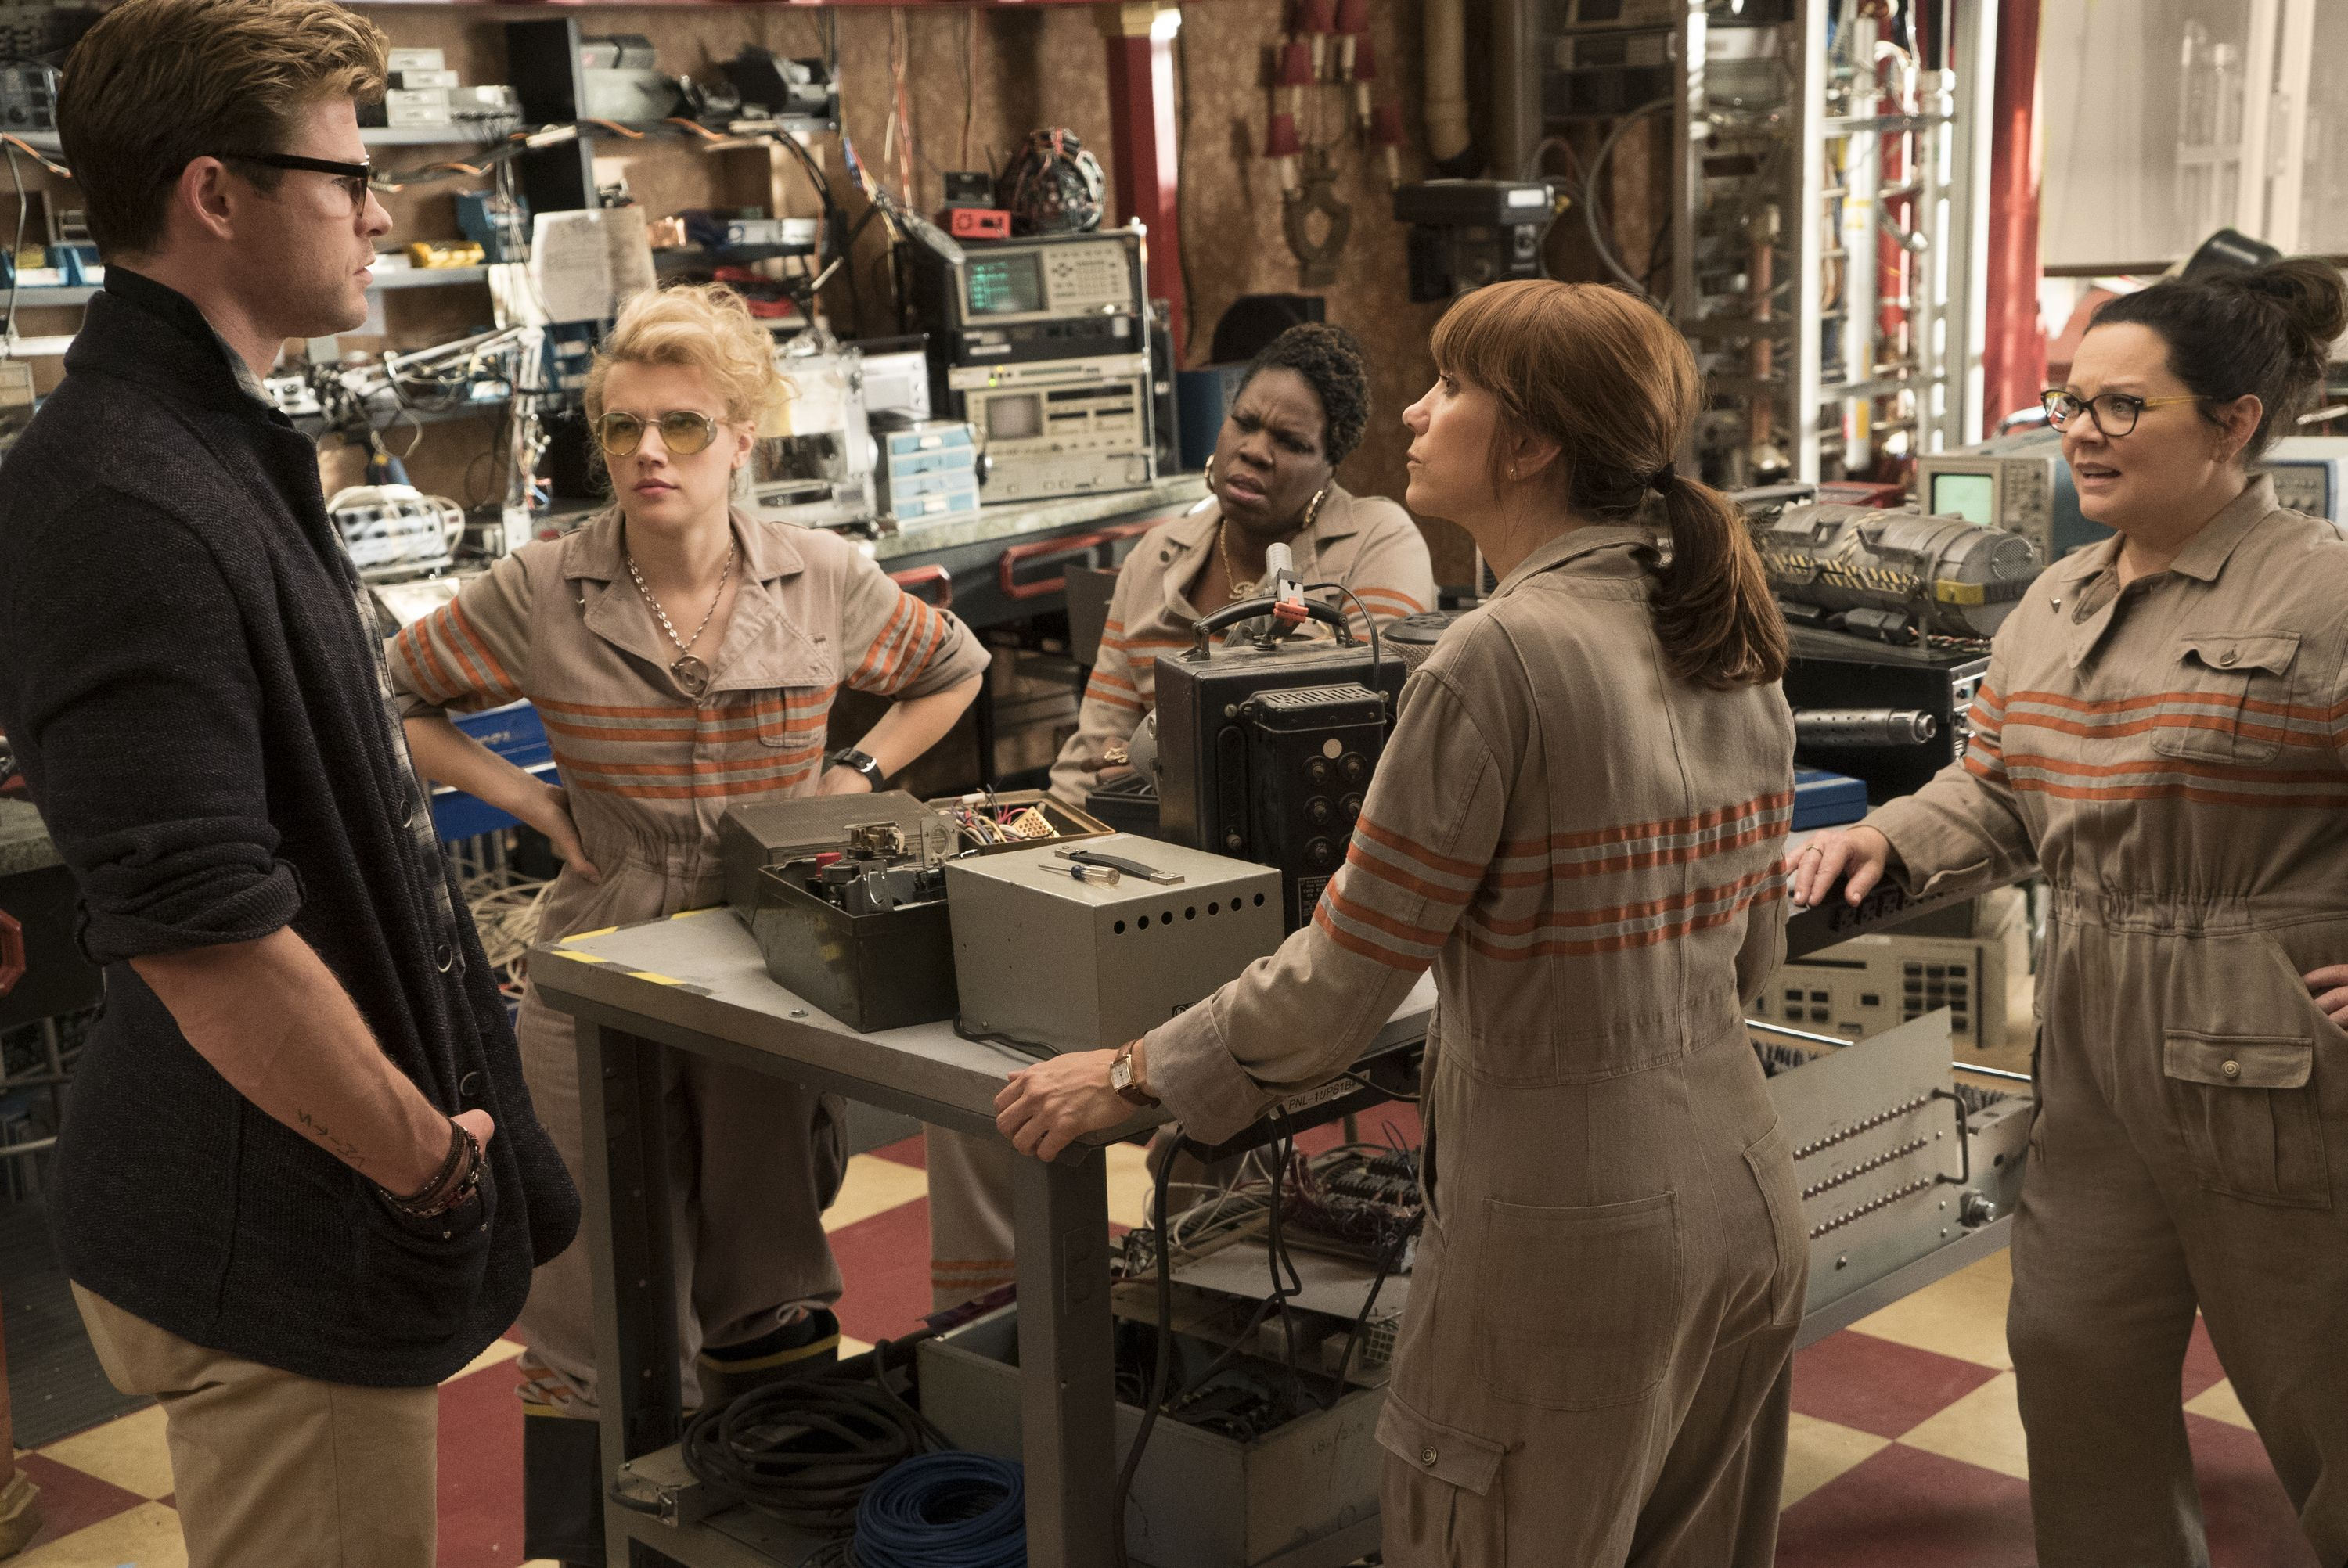 The Ghostbusters Holtzmann (Kate McKinnon), Patty (Leslie Jones), Erin (Kristen Wiig), Abby (Melissa McCarthy) with their receptionist Kevin (Chris Hemsworth) in Columbia Pictures' GHOSTBUSTERS.